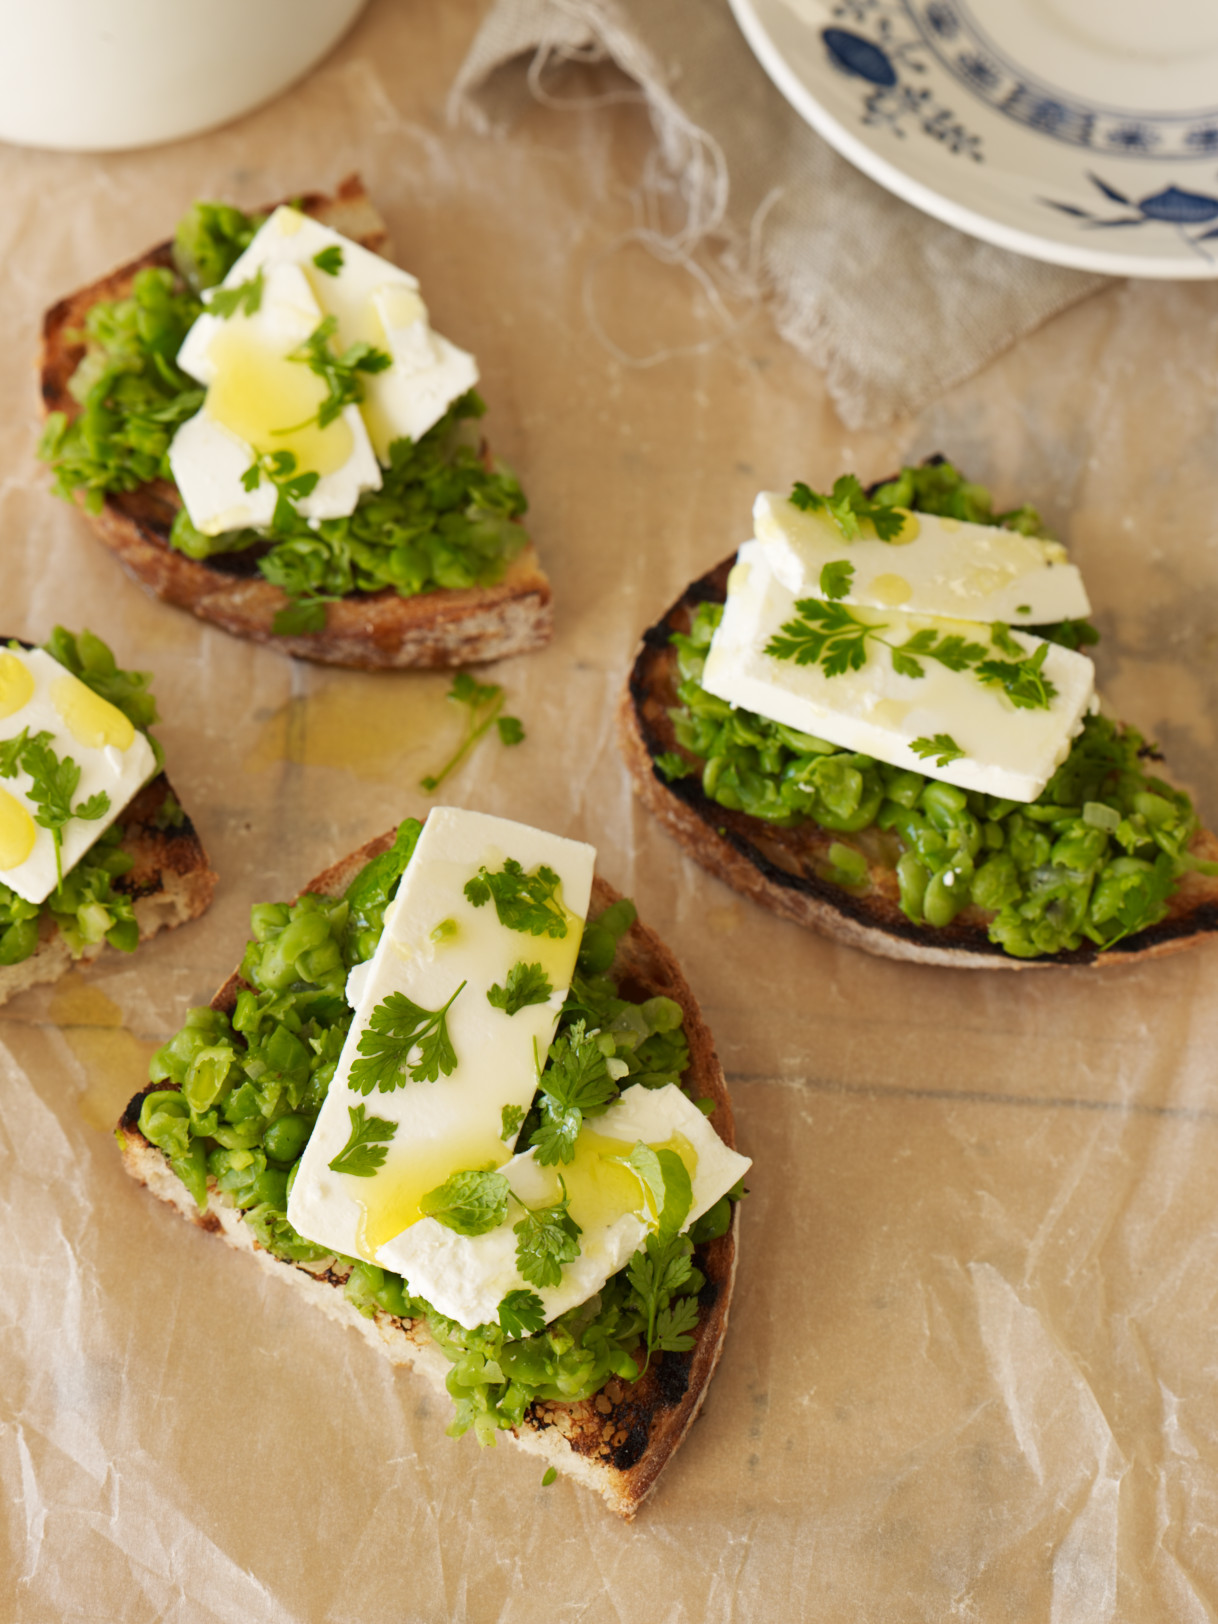 Crushed peas on sourdough